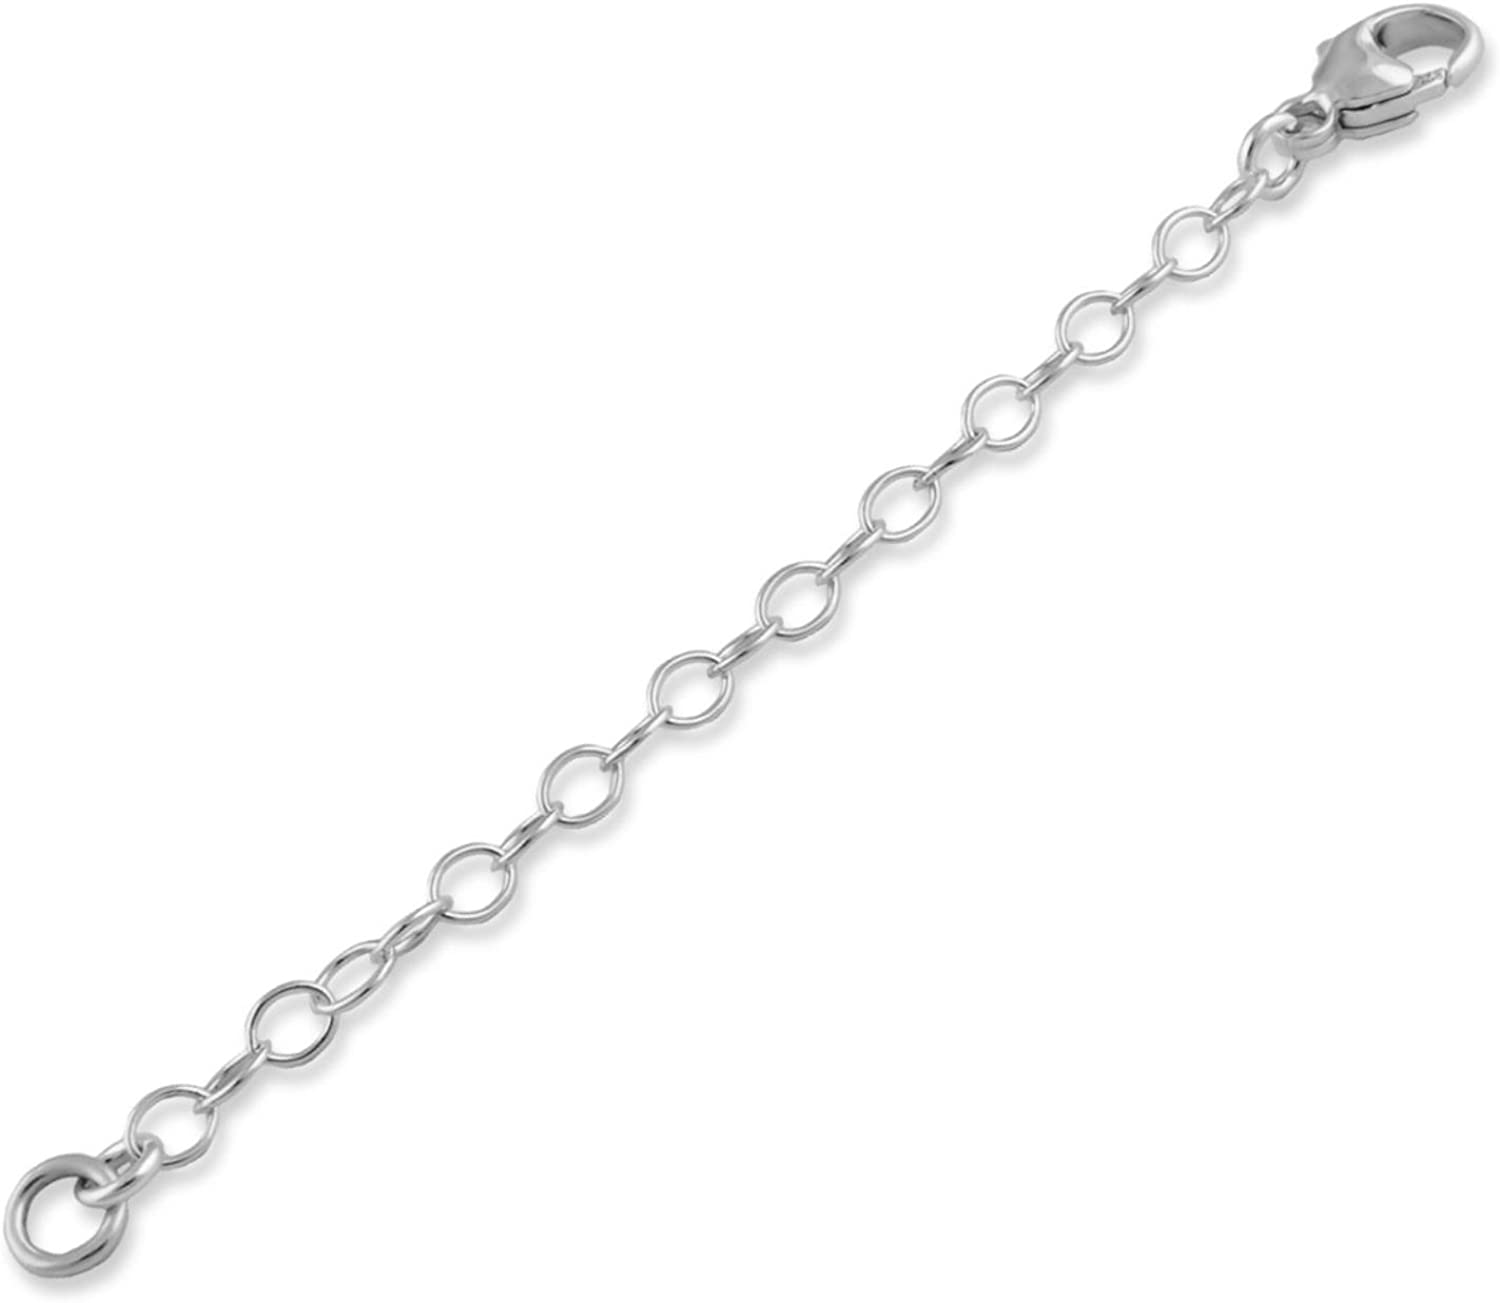 Silver Chain Extender